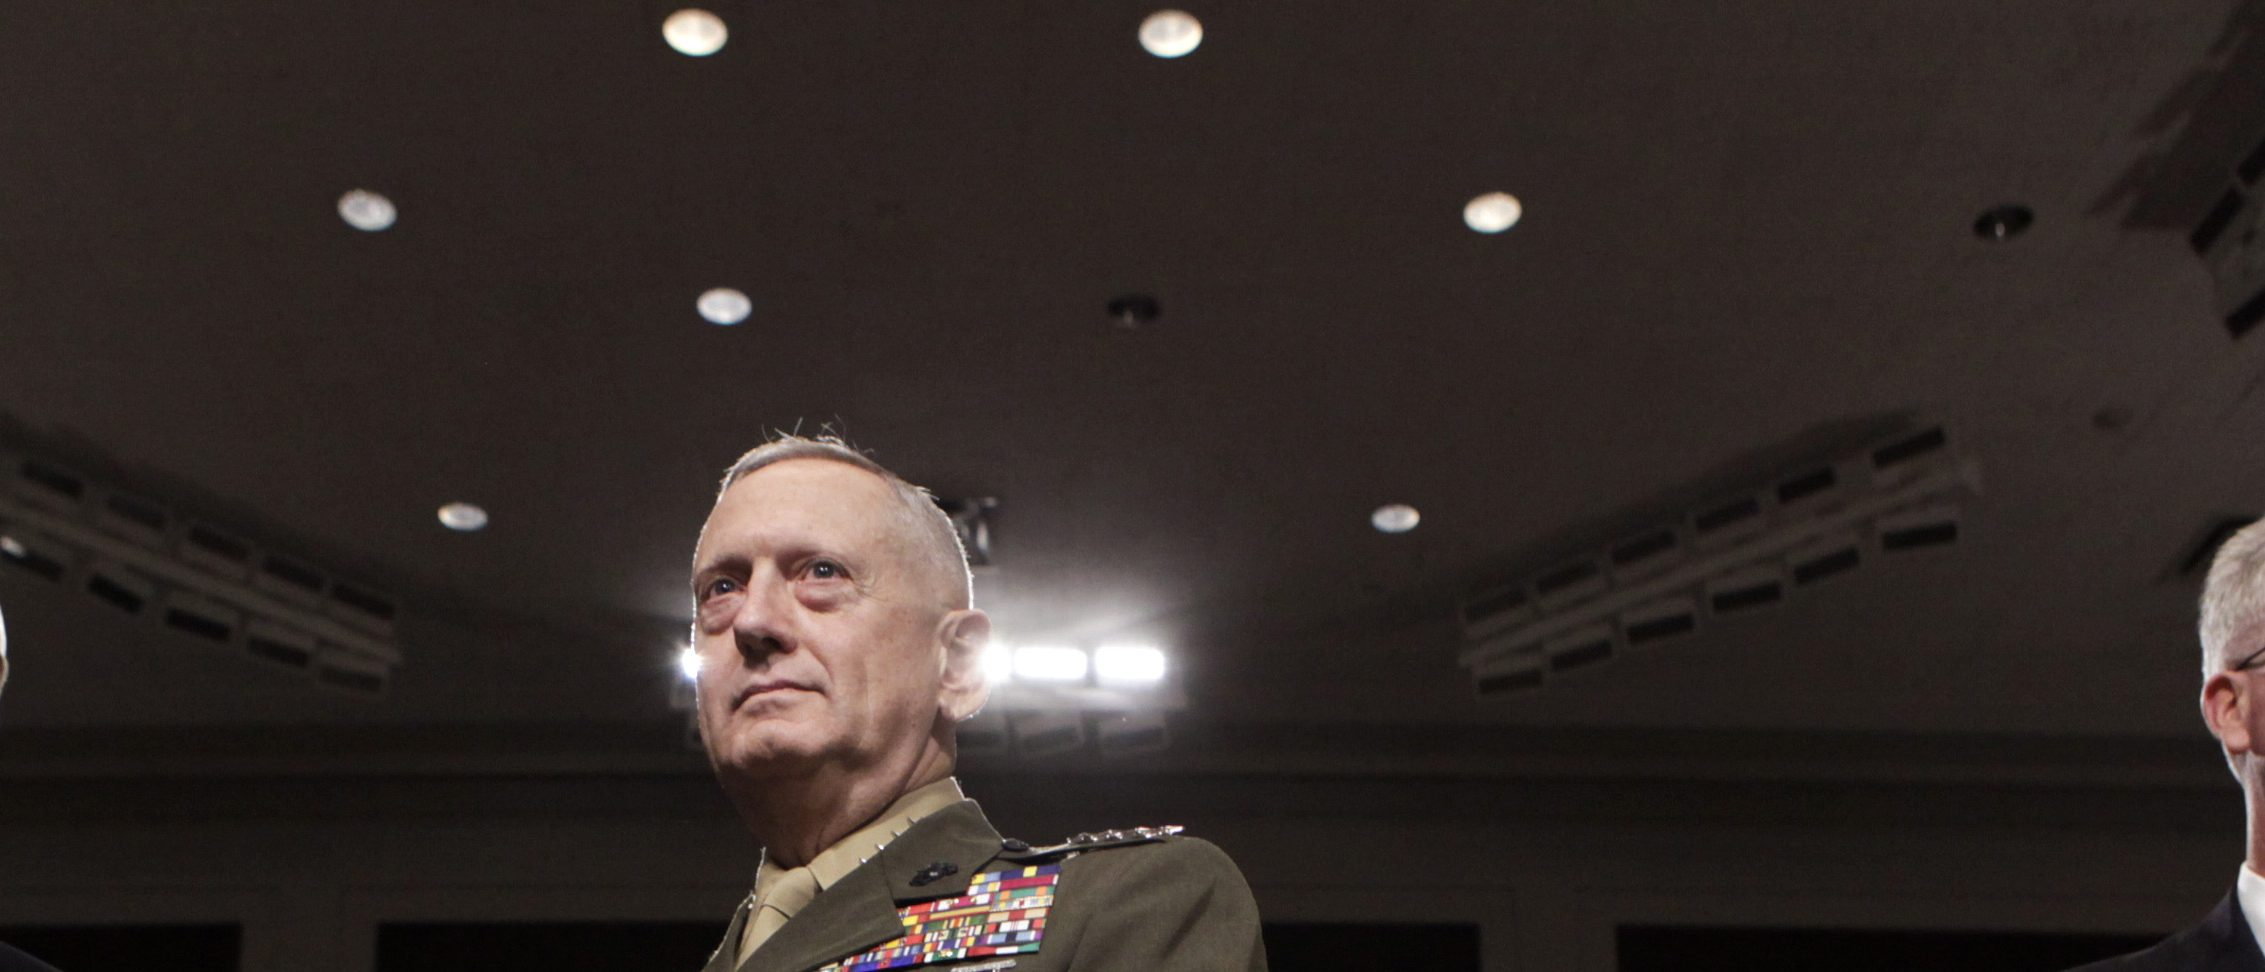 General James Mattis (C) arrives at the Senate Armed Services Committee hearing on Capitol Hill in Washington July 27, 2010, on his nomination to be Commander of U.S. Central Command. REUTERS/Yuri Gripas